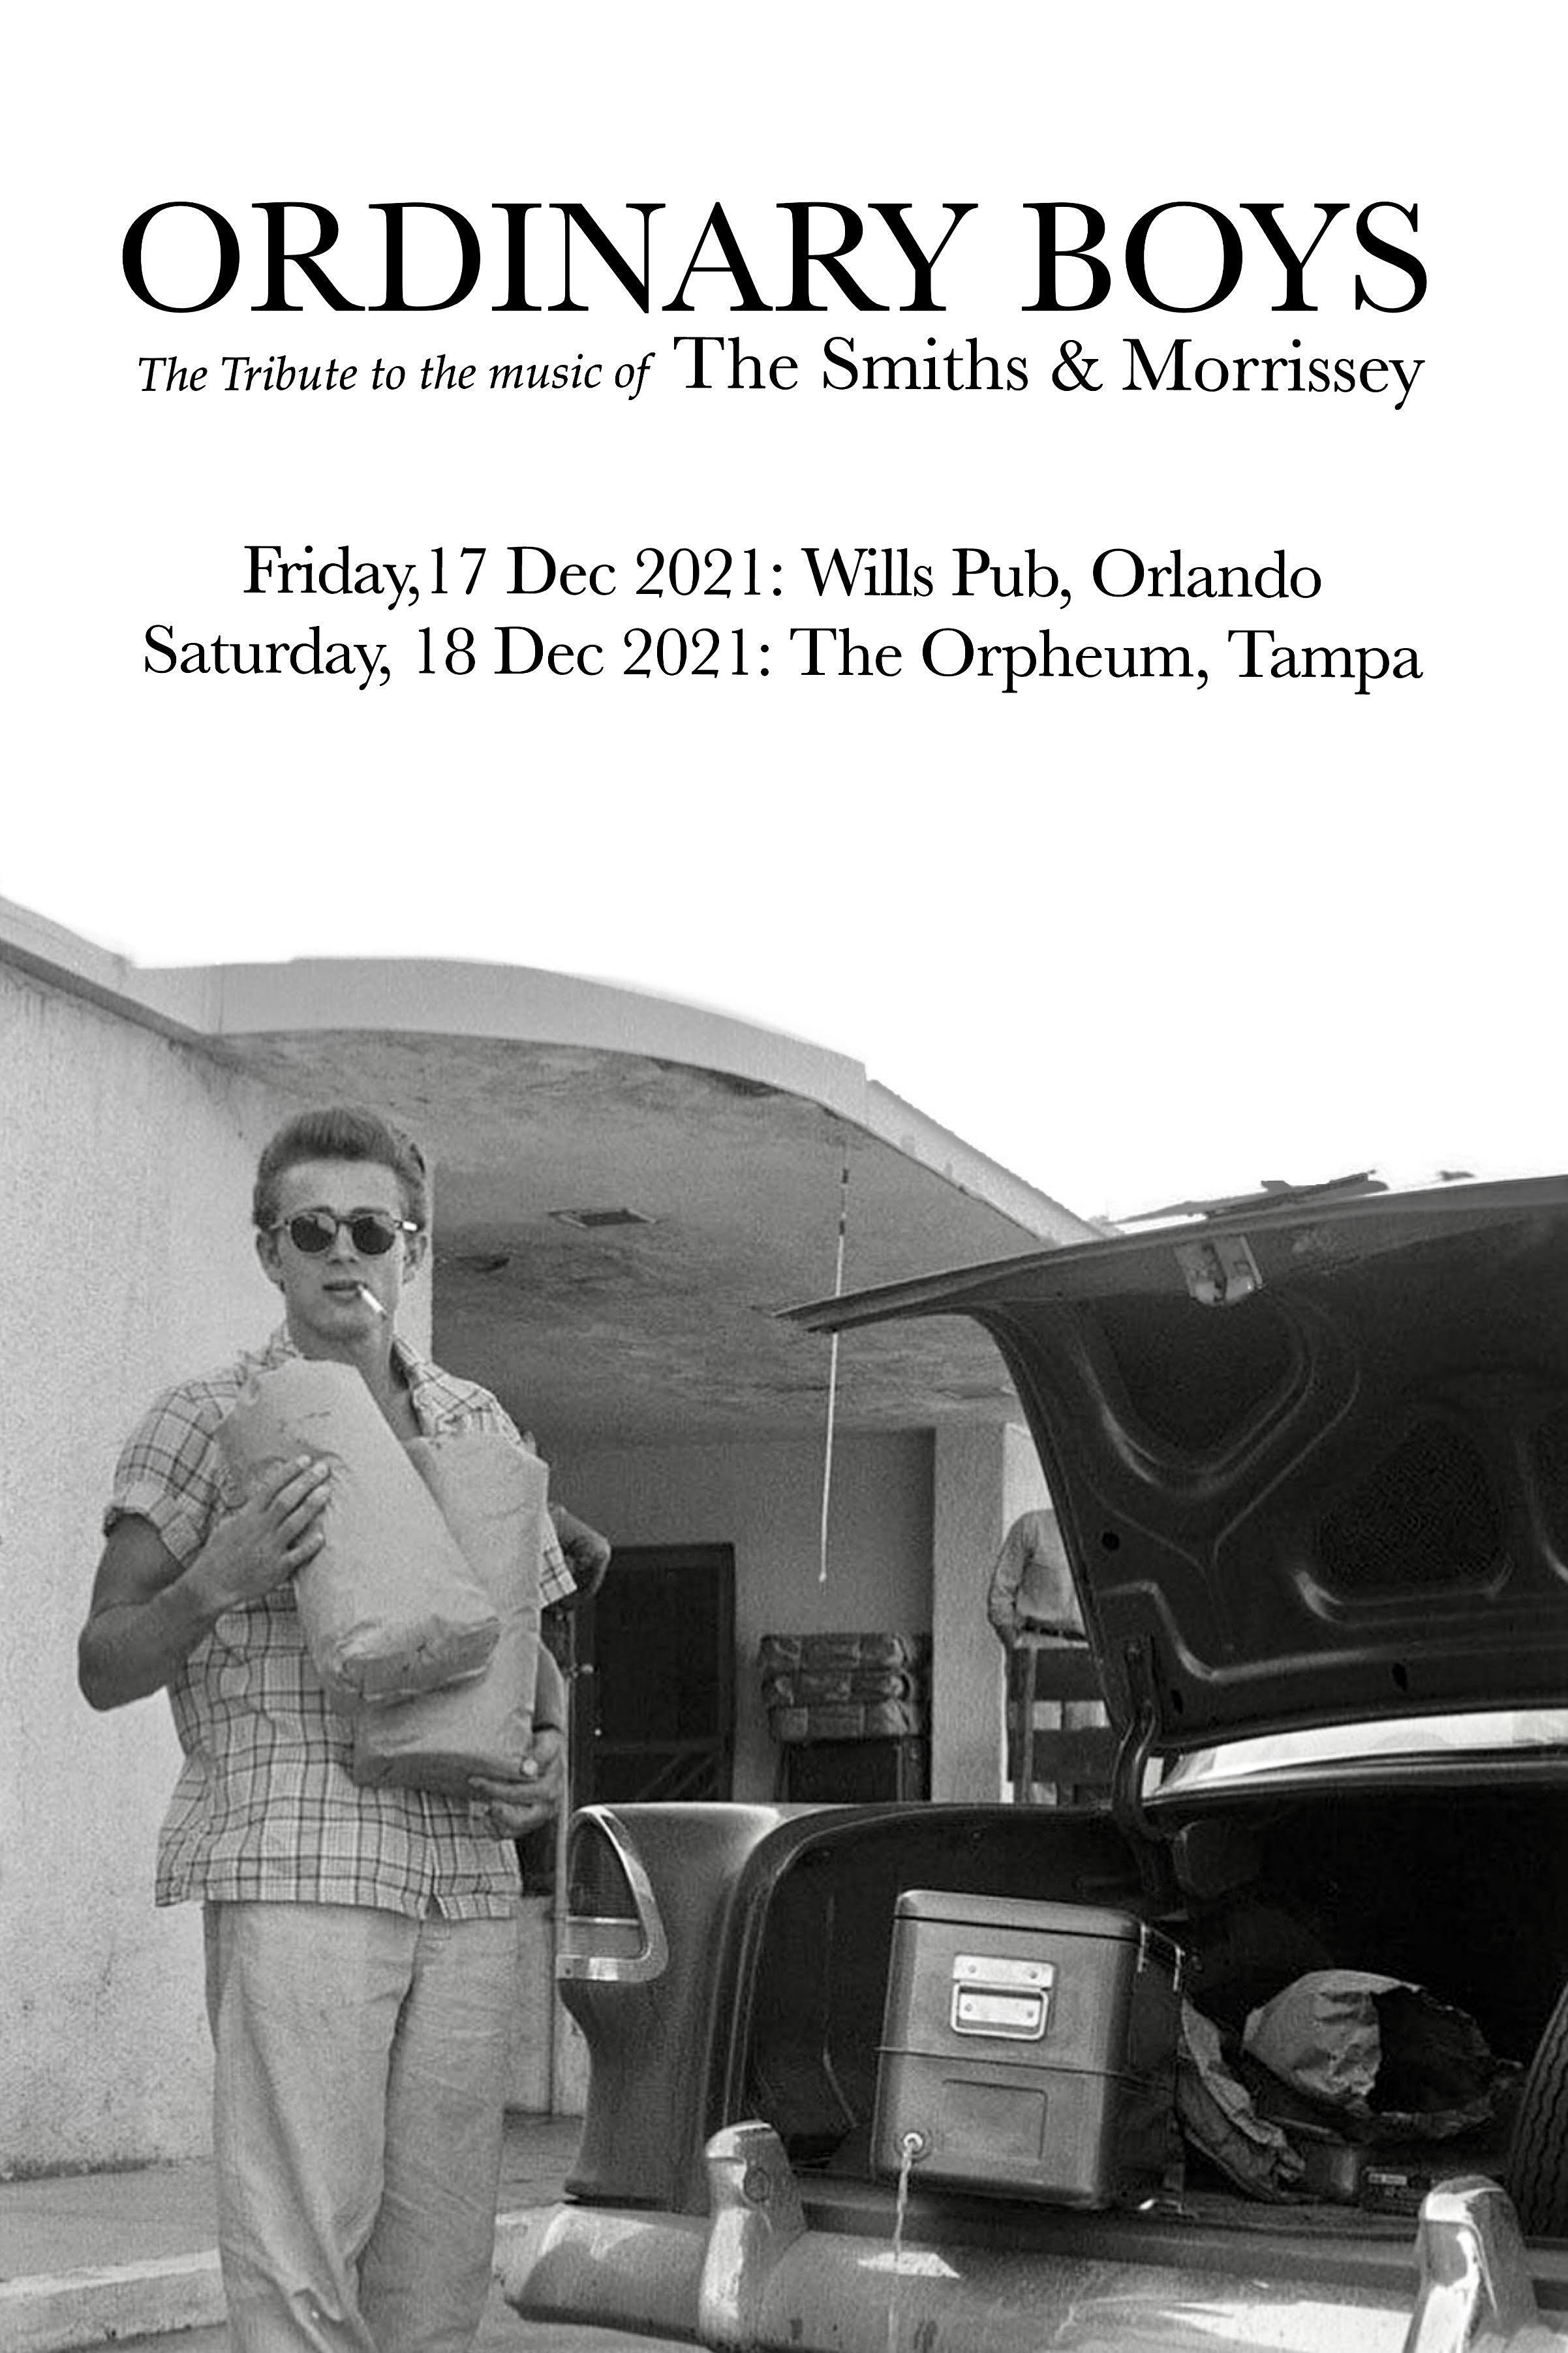 Ordinary Boys: A tribute to the music of The Smiths and Morrissey in Tampa